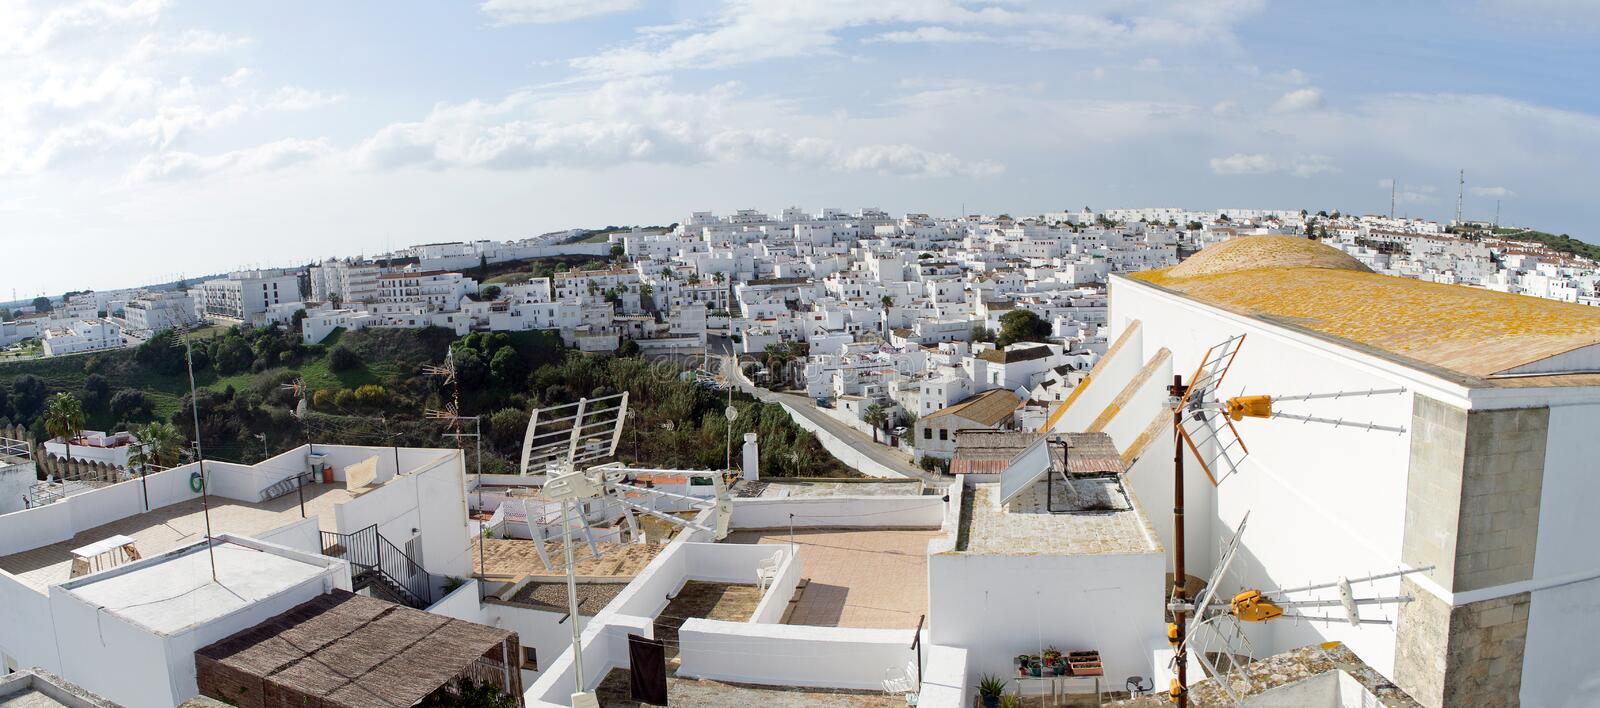 Vejer de la Frontera, Spain. Panoramic, landscape, aerial view of Vejer de la Frontera town. Vejer de la Frontera is a little town near Cadiz in Andalusia royalty free stock photos